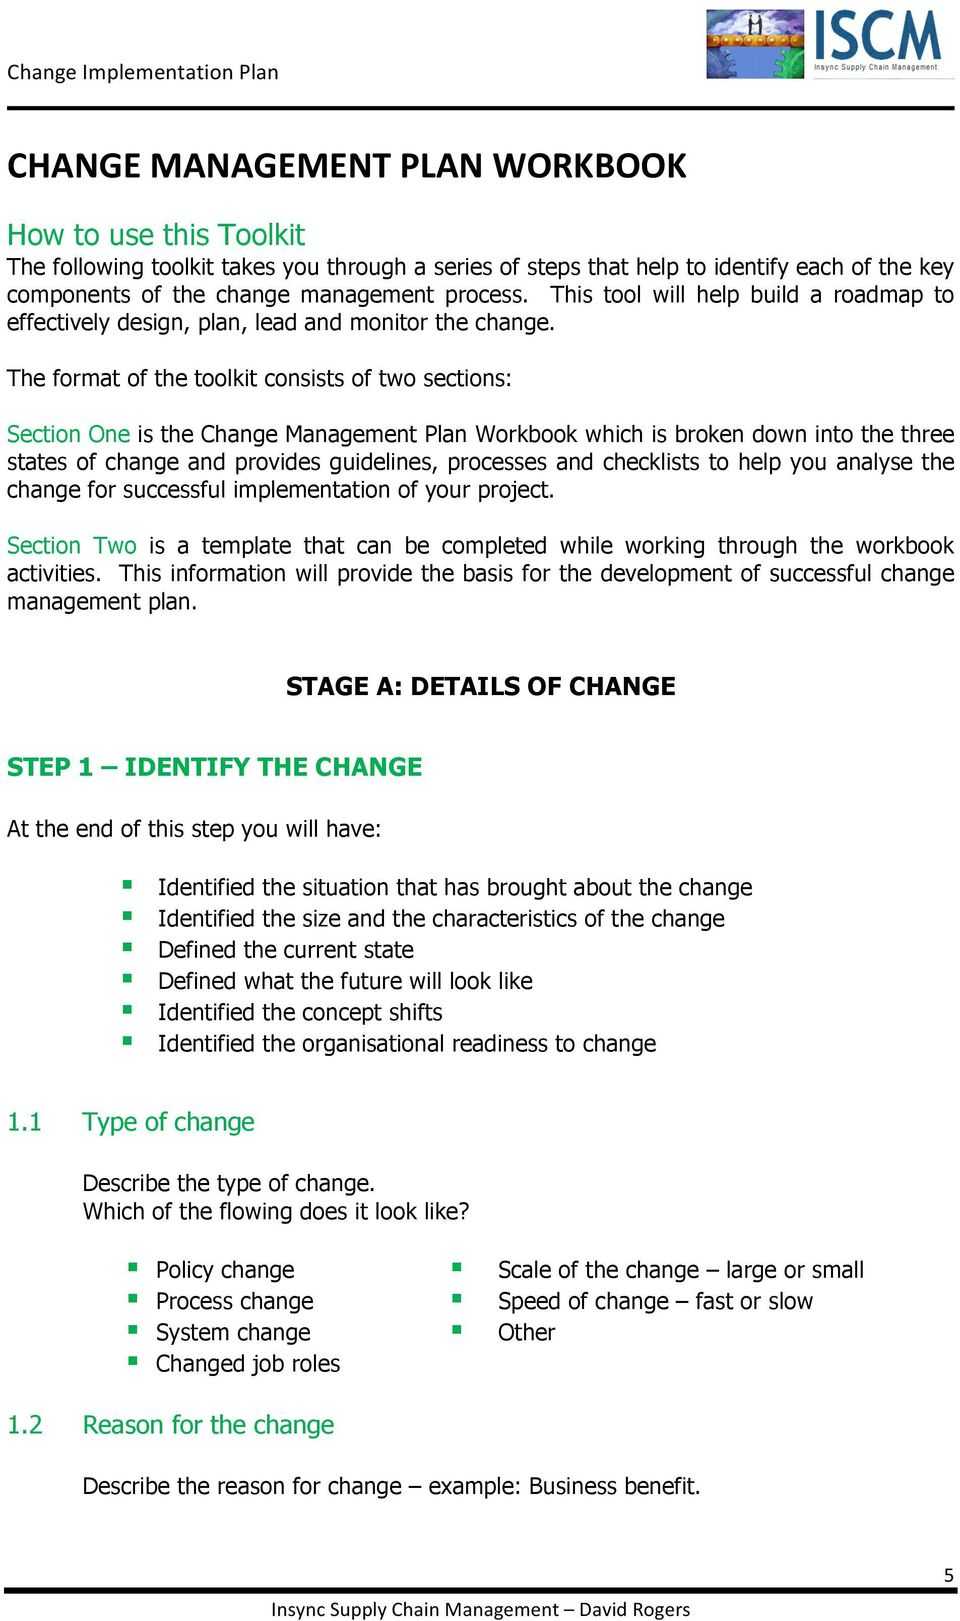 Change Management Plan Workbook And Template Pdf